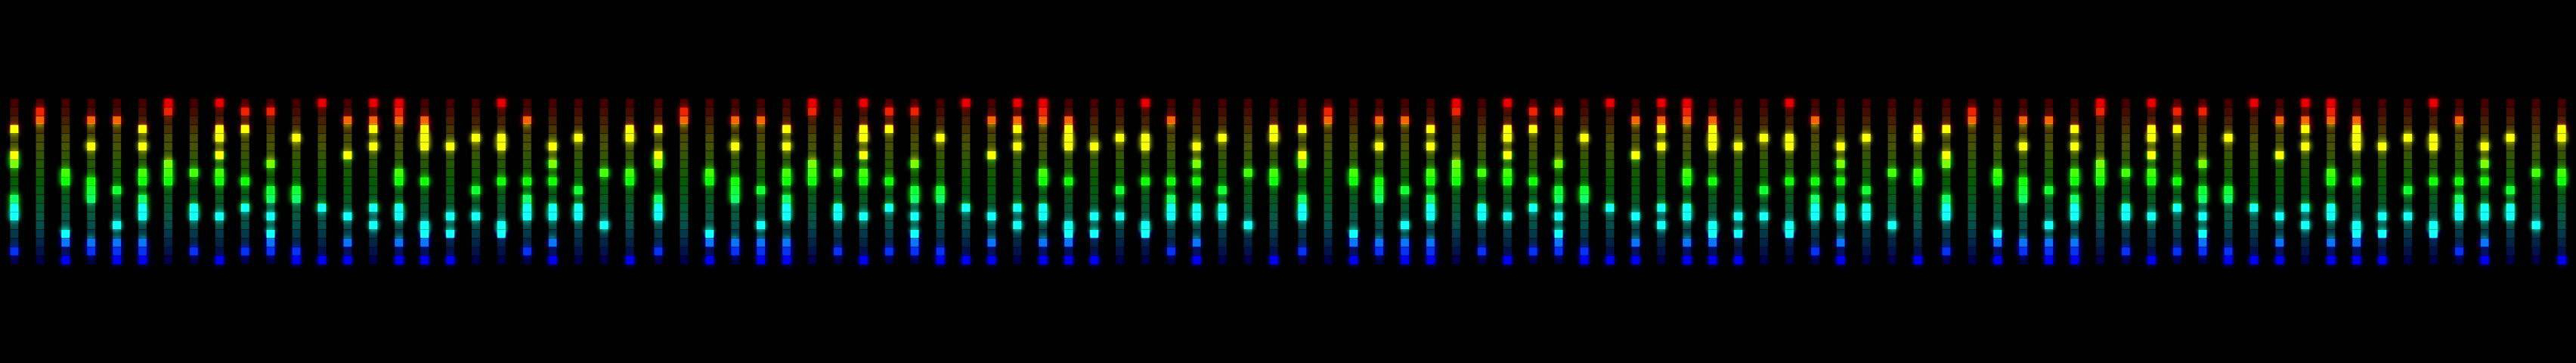 color_spectrum_leds_long_x2